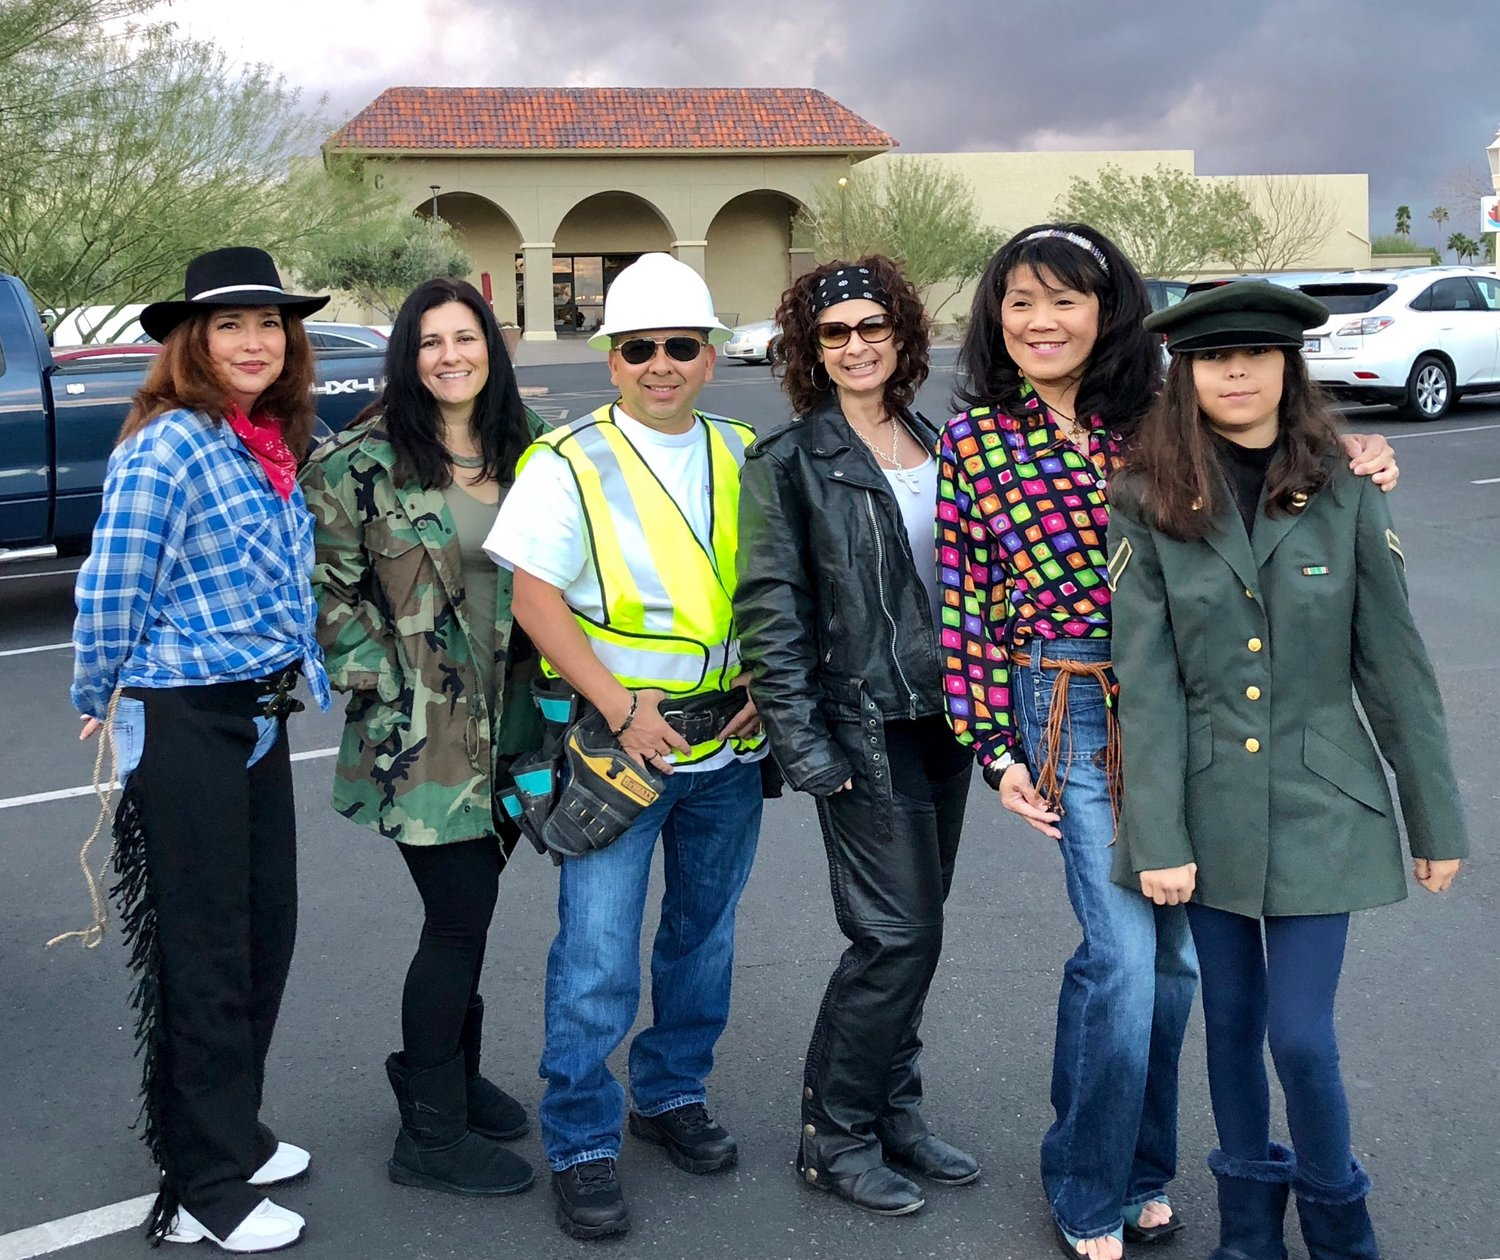 The team enjoys participating in community events, including dressing up in different themes for parades. This 50th anniversary parade in Sun City West celebrated the seventies. Independent Newsmedia first bought newspapers in Arizona in 1977.